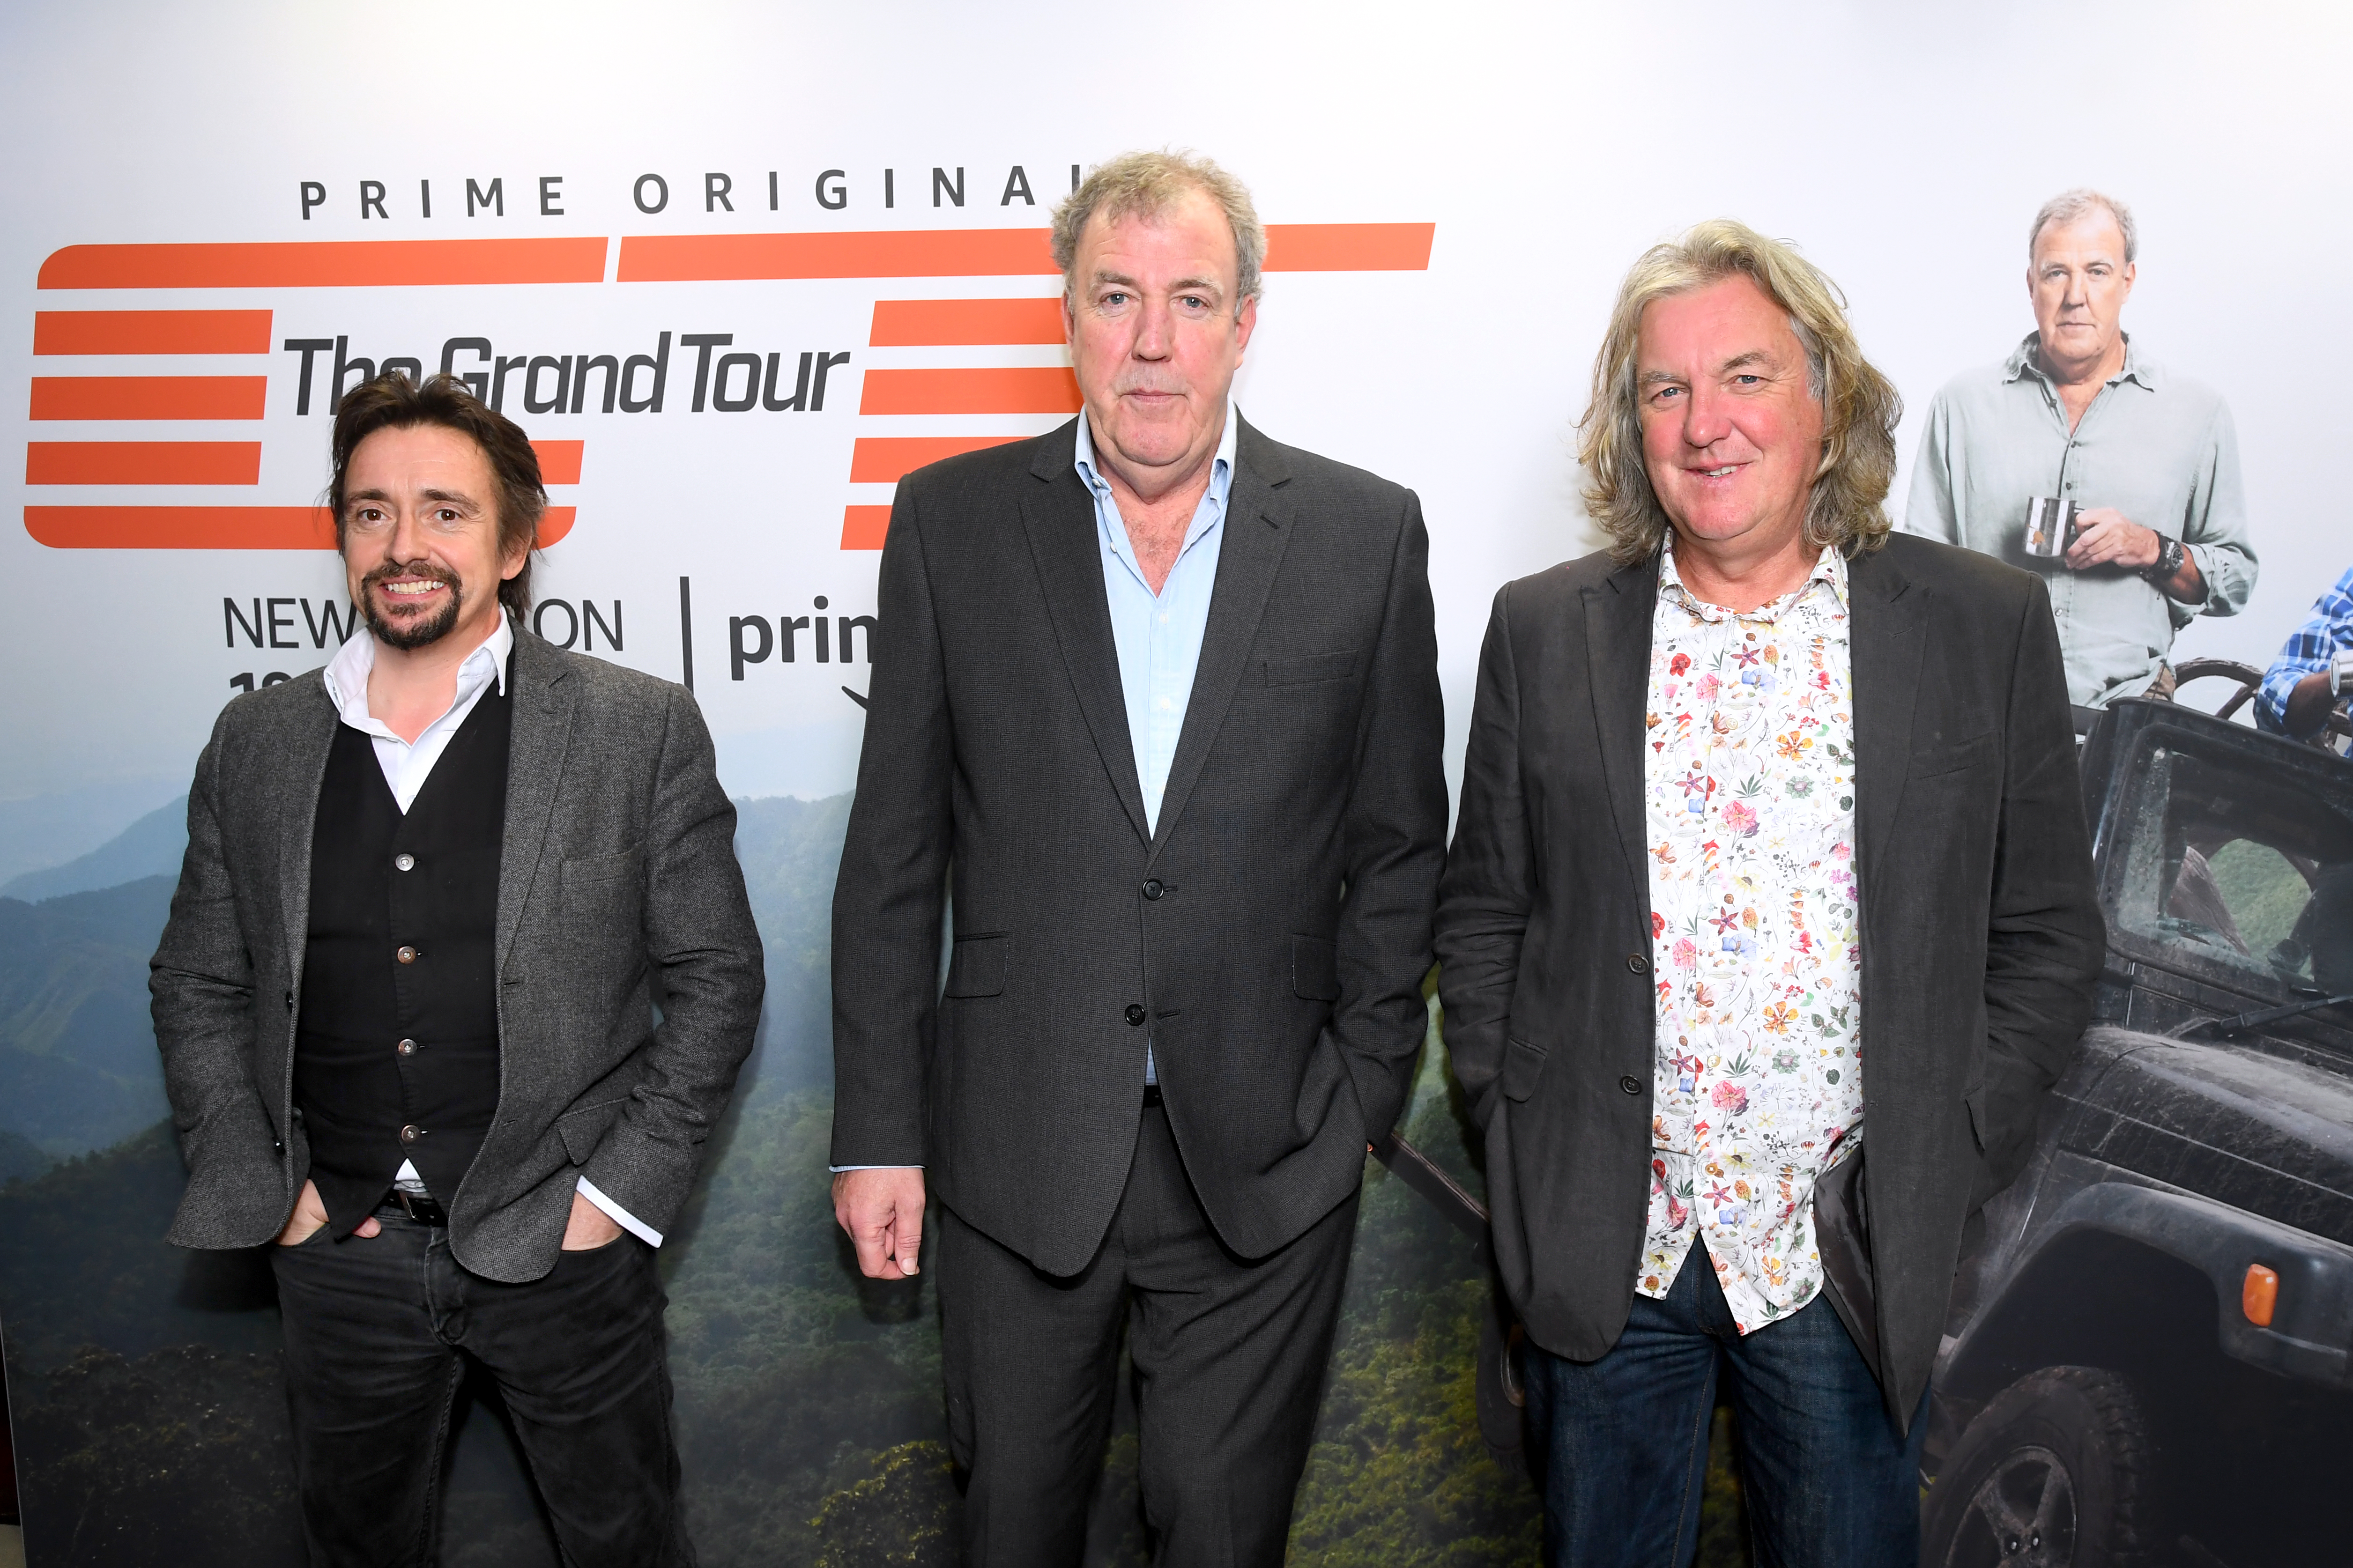 LONDON, ENGLAND - JANUARY 15: Richard Hammond, Jeremy Clarkson and James May attend a screening of 'The Grand Tour' season 3 held at The Brewery on January 15, 2019 in London, England. (Photo by Dave J Hogan/Getty Images)